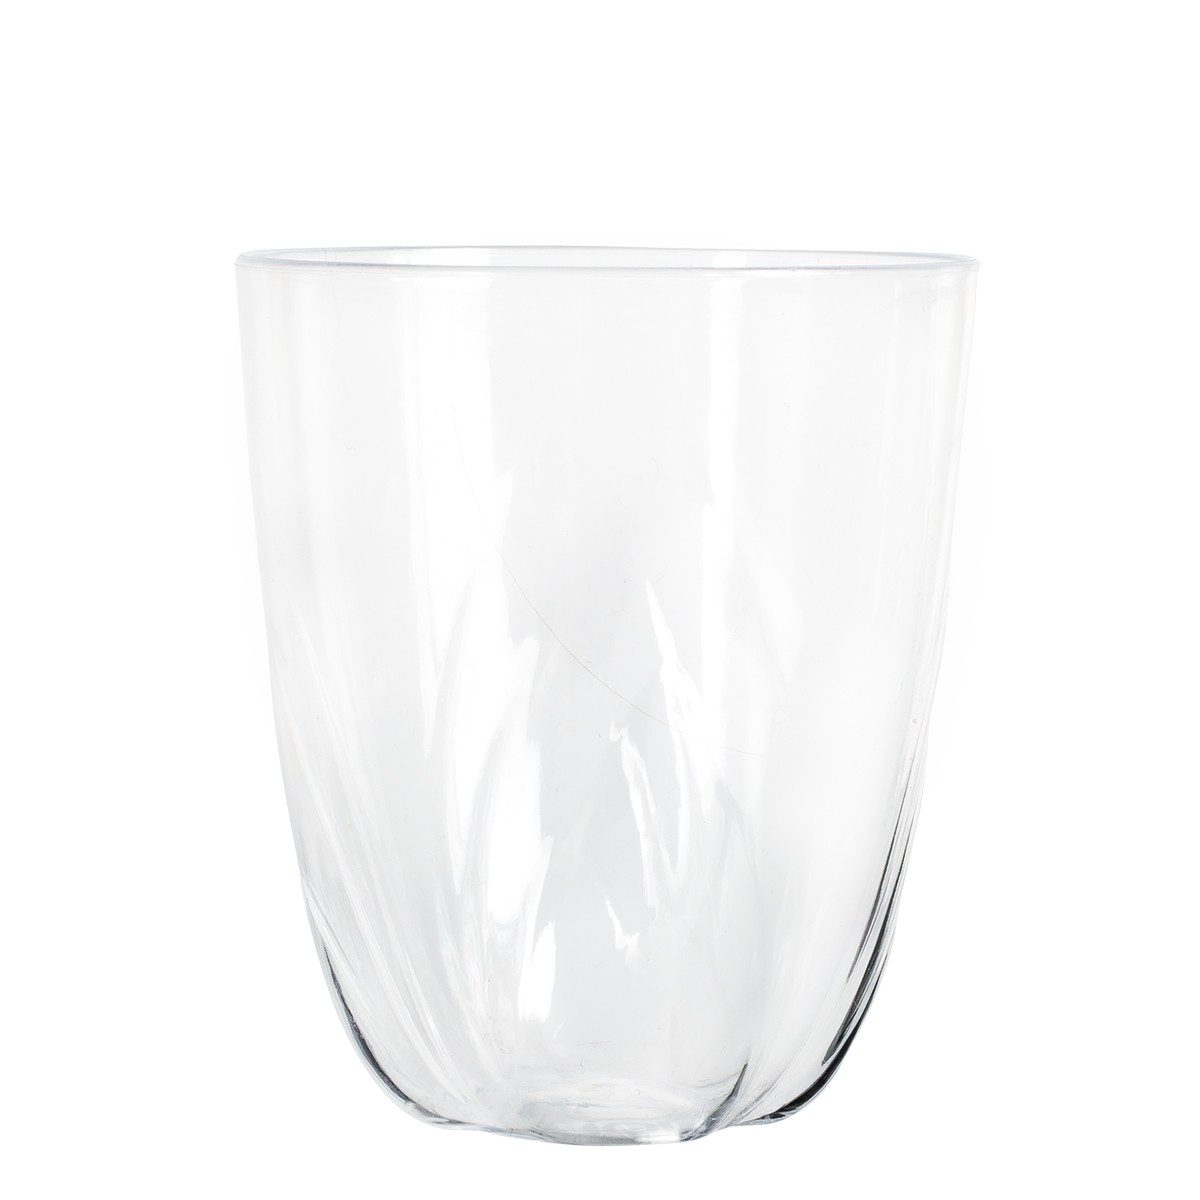 verrine transparente réutilisable 12 cl lotus